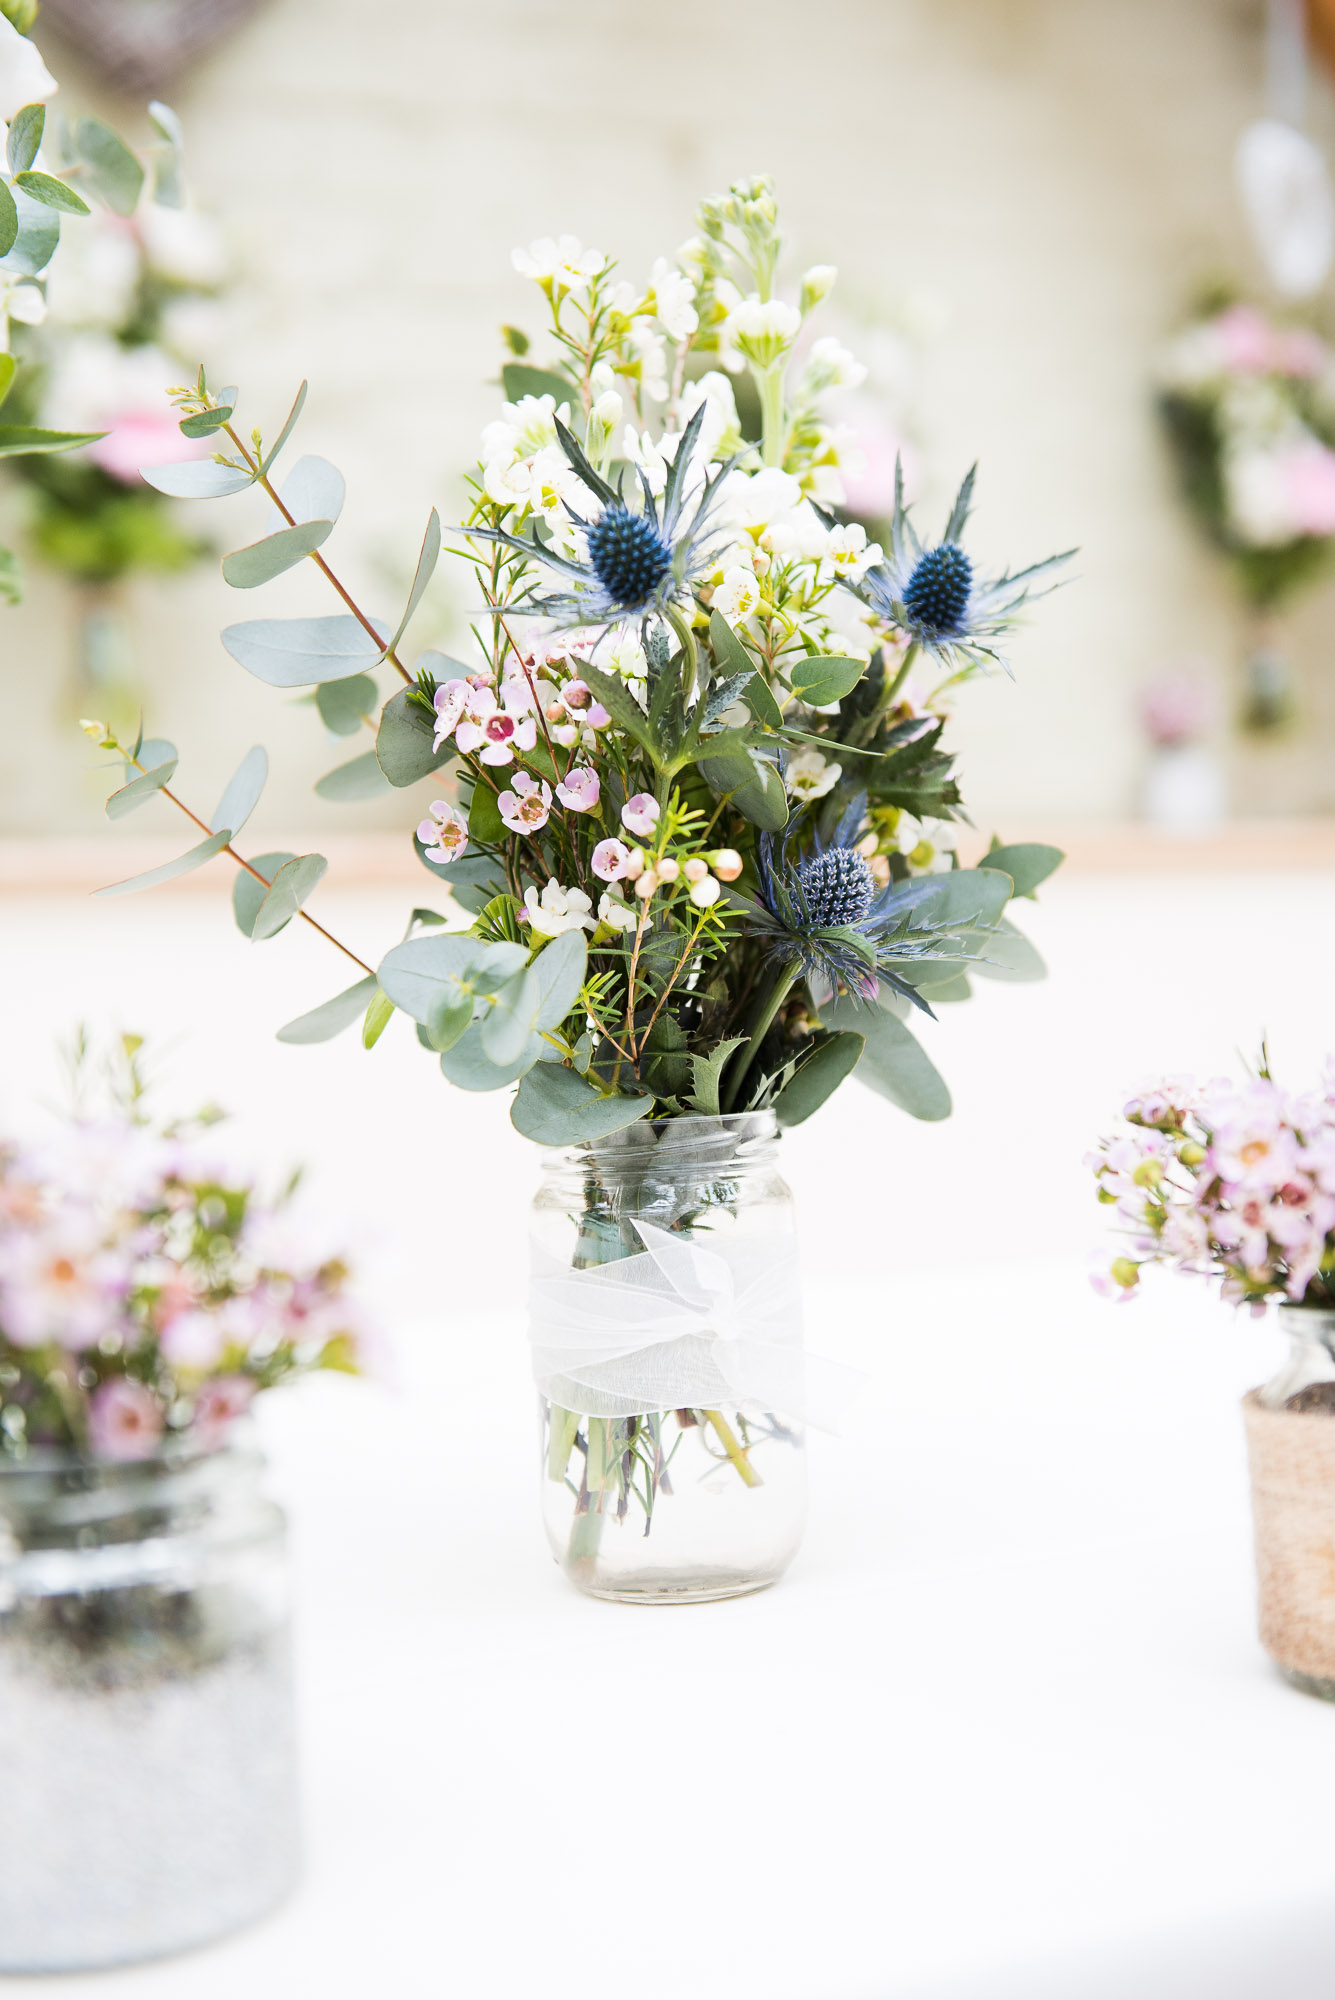 Spring floral tones of eucalyptus and sea holly in floral arrangement